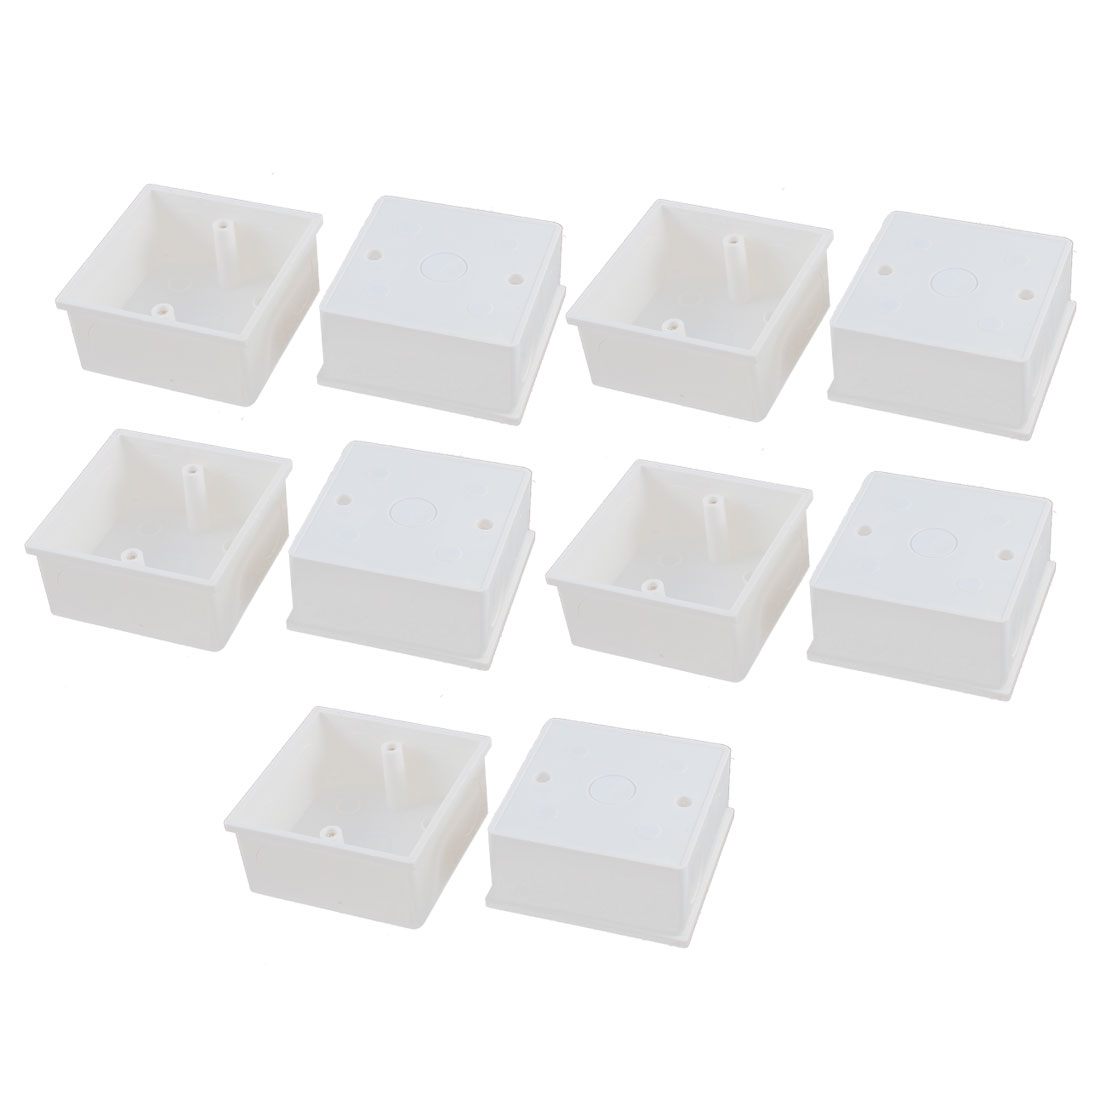 10pcs 86mm x 86mm x 40mm White PVC Single Gang Wiring Mount Back Box for Wall Socket